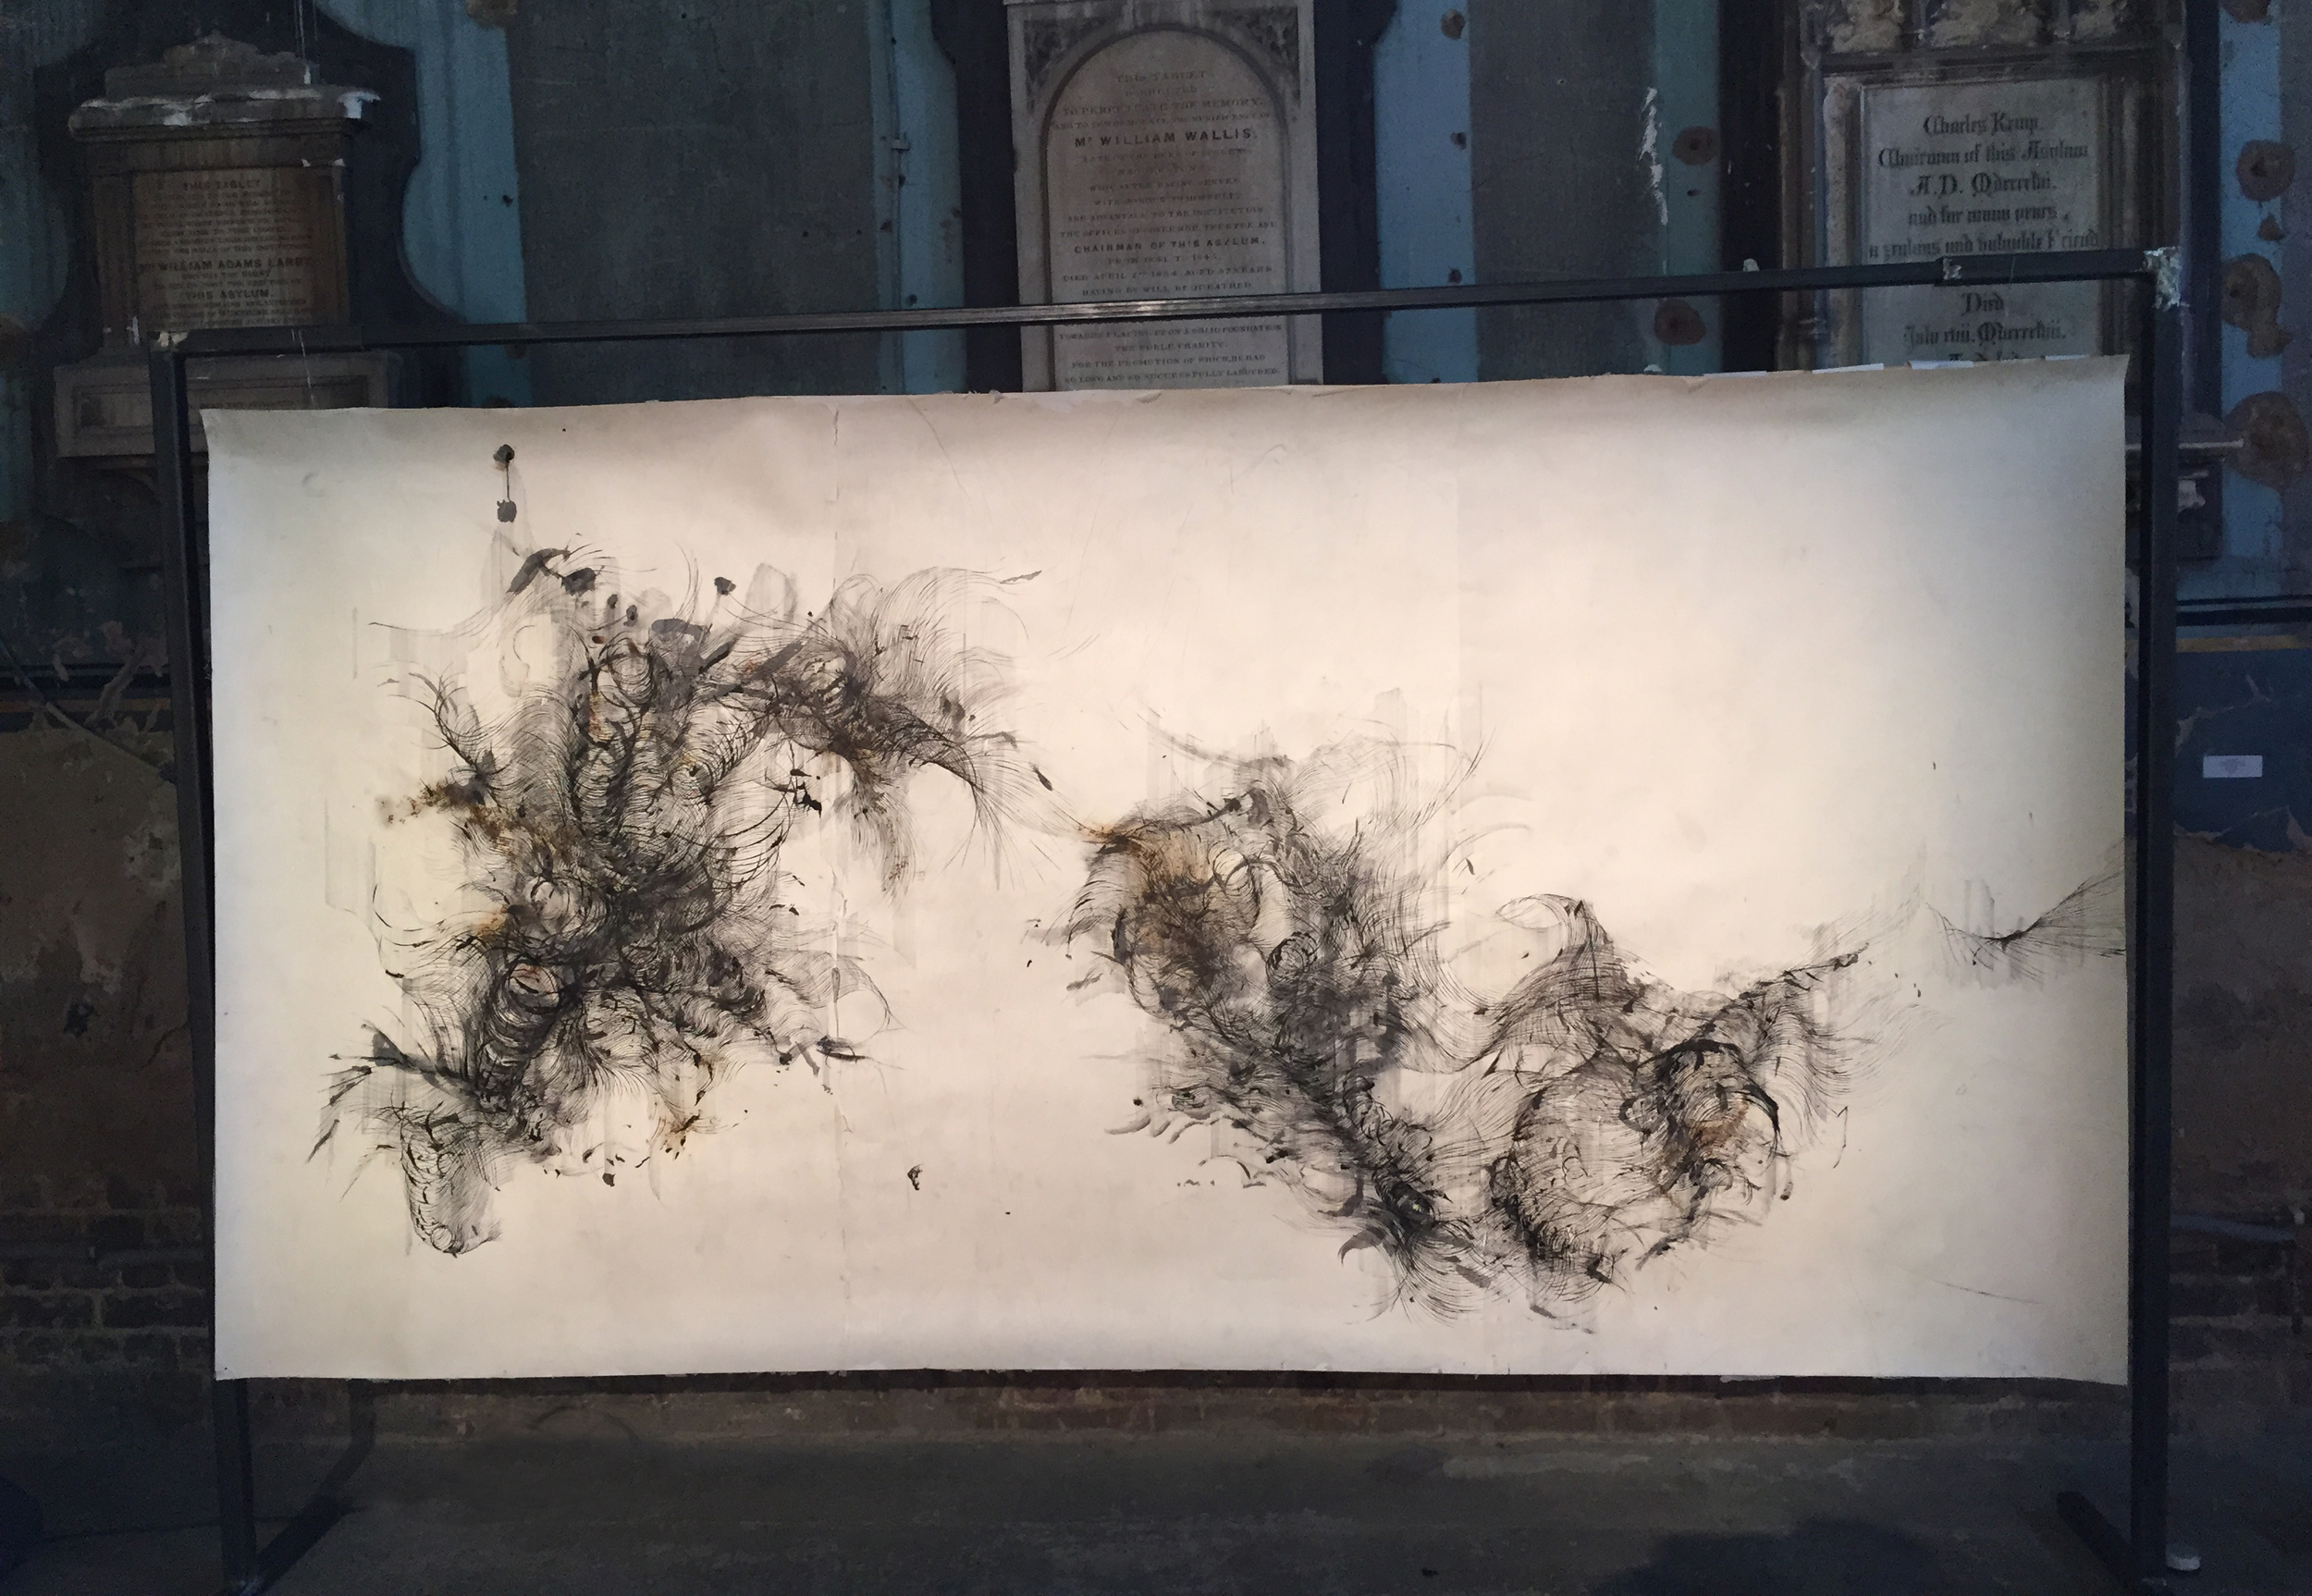 installation shot of 'Anatomy of thought IV' in the Asylum exhibition 'IN-TRA'